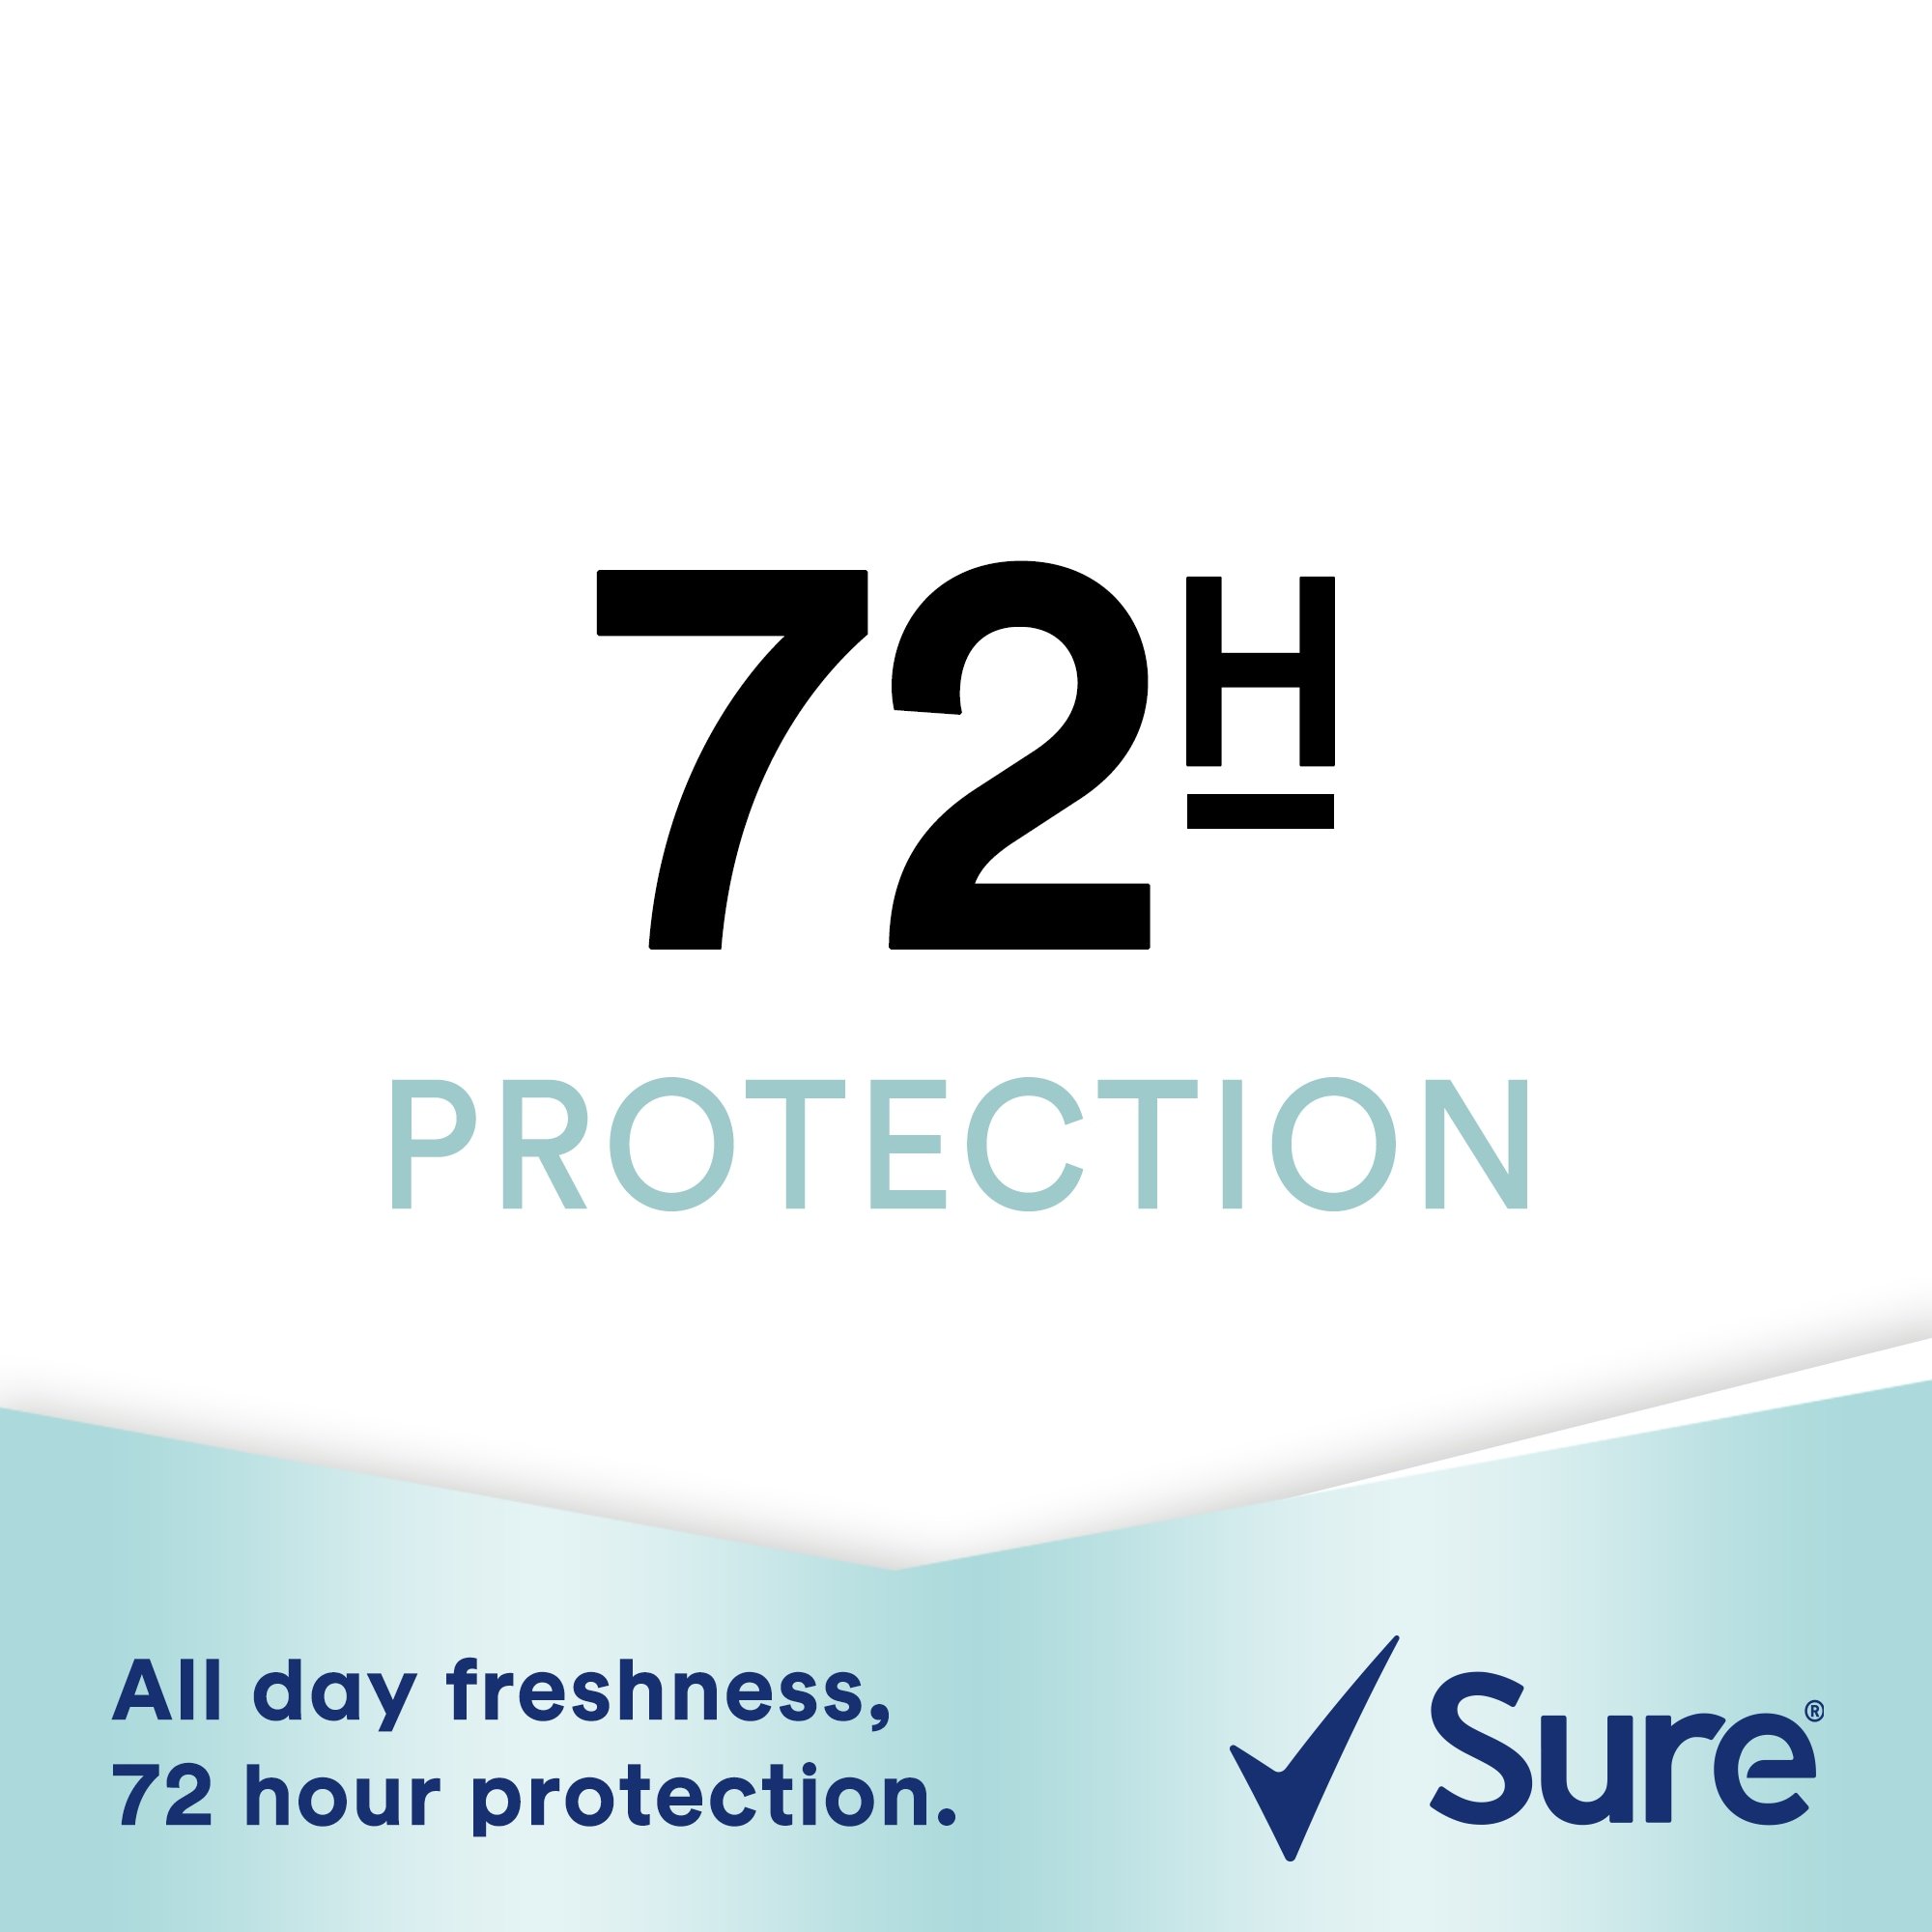 72 hours protection